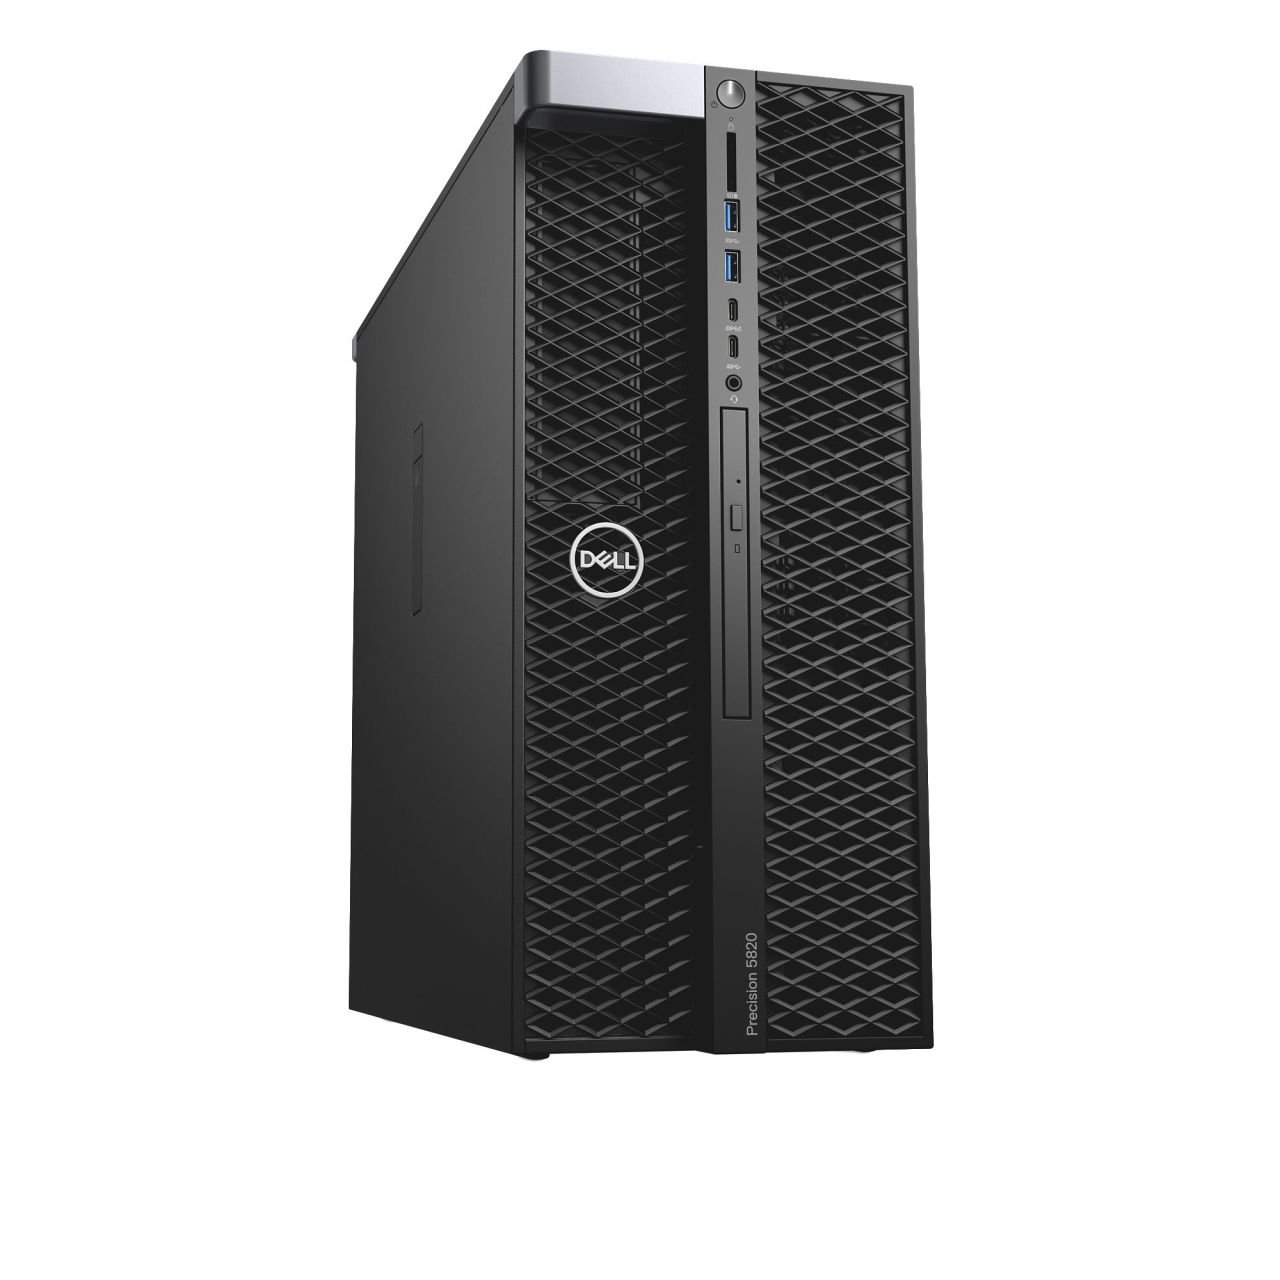 DELL PRECISION T5820_W-2102 Xeon W-2102 2.9GHz 16GB (2x8GB) 256GB SSD WIN10 PRO WORKSTATION